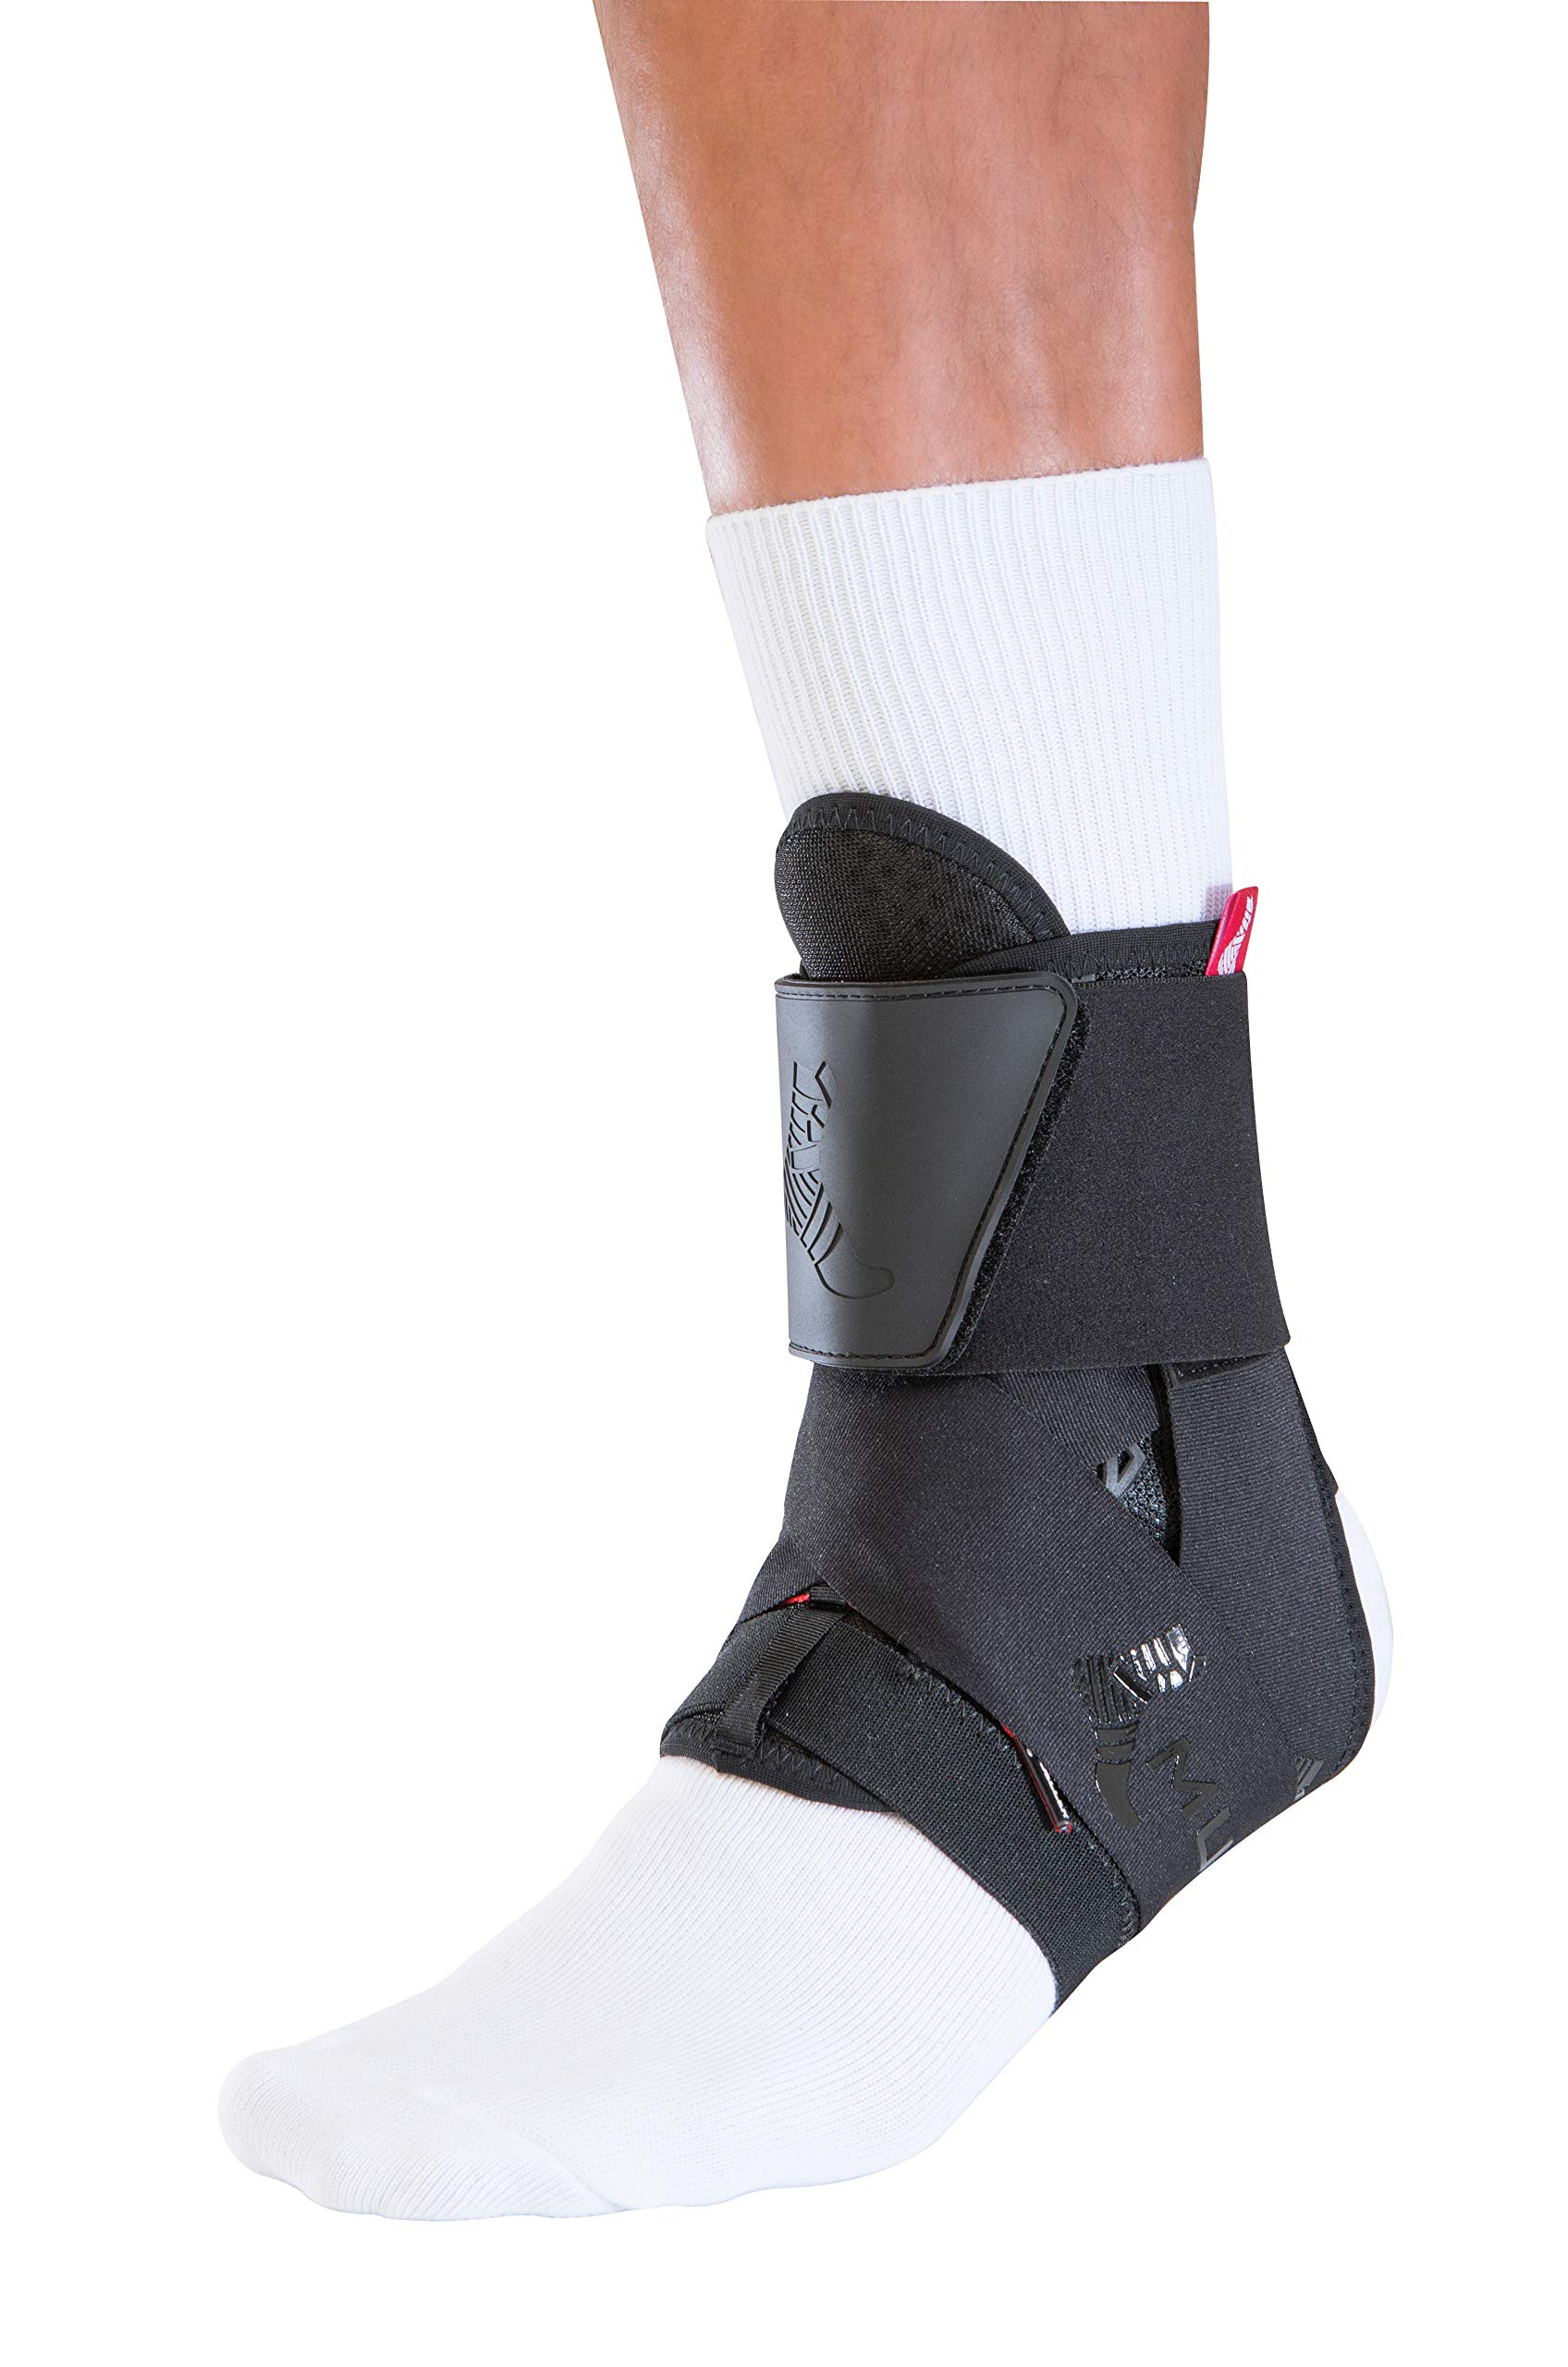 Mueller Sports Medicine The One Ankle Brace Premium, Black, Medium by Mueller Sports Medicine